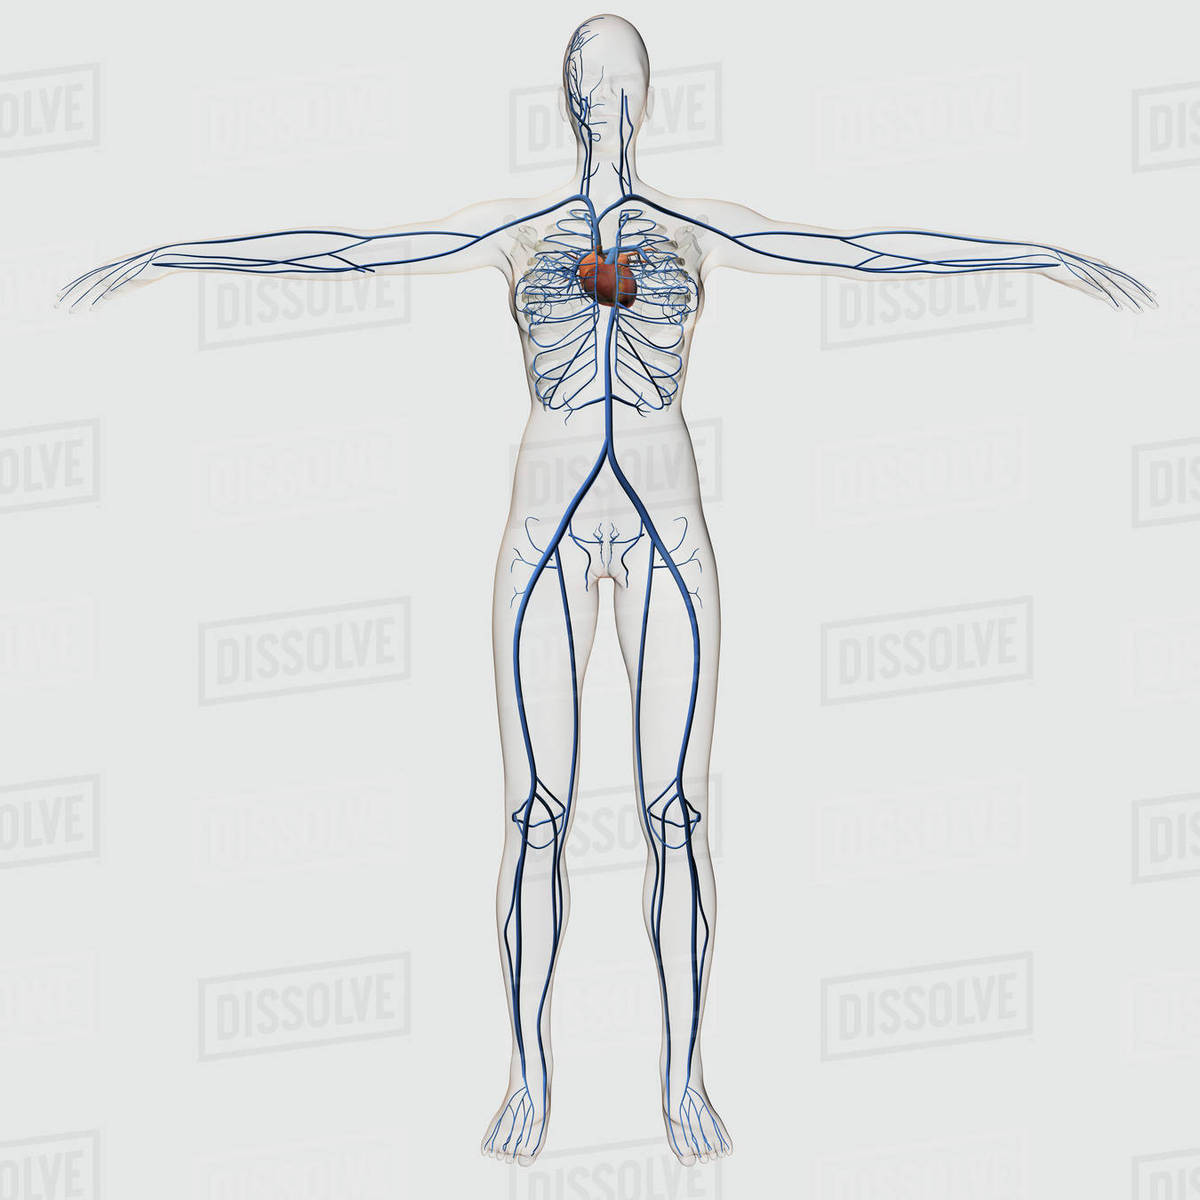 Medical Illustration Of Female Circulatory System With Heart And